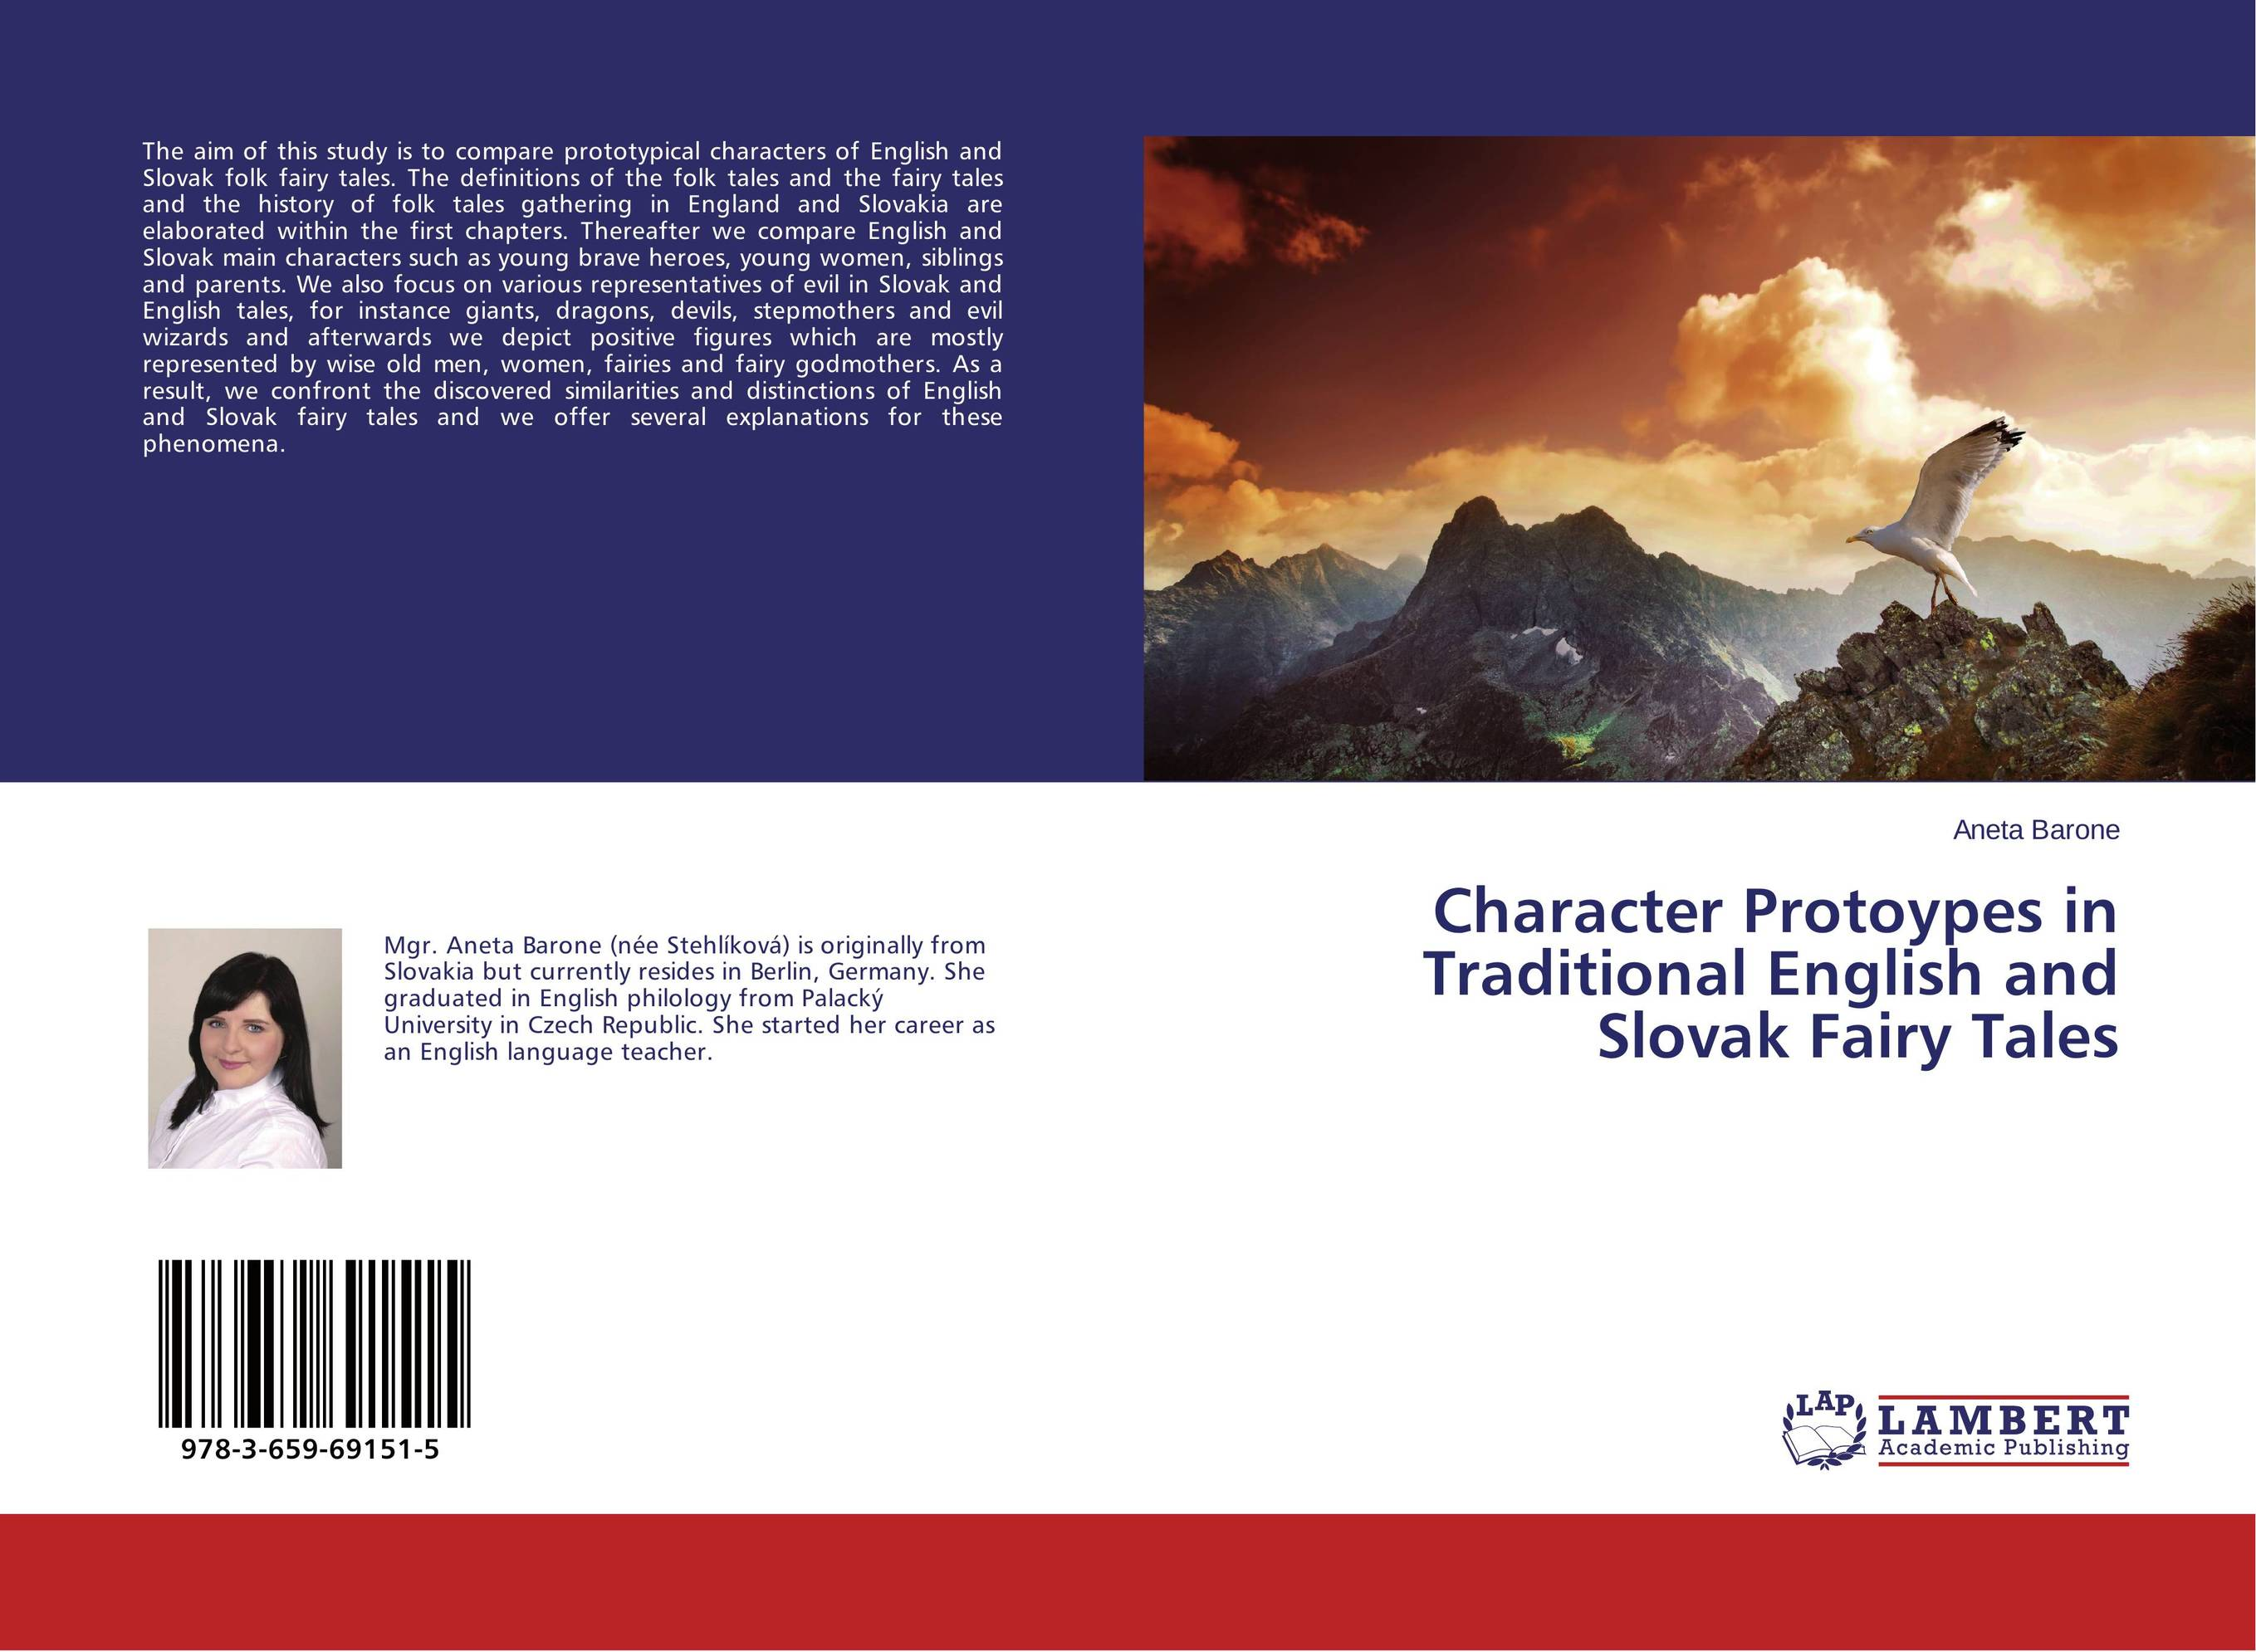 Character Protoypes in Traditional English and Slovak Fairy Tales monsters of folk monsters of folk monsters of folk